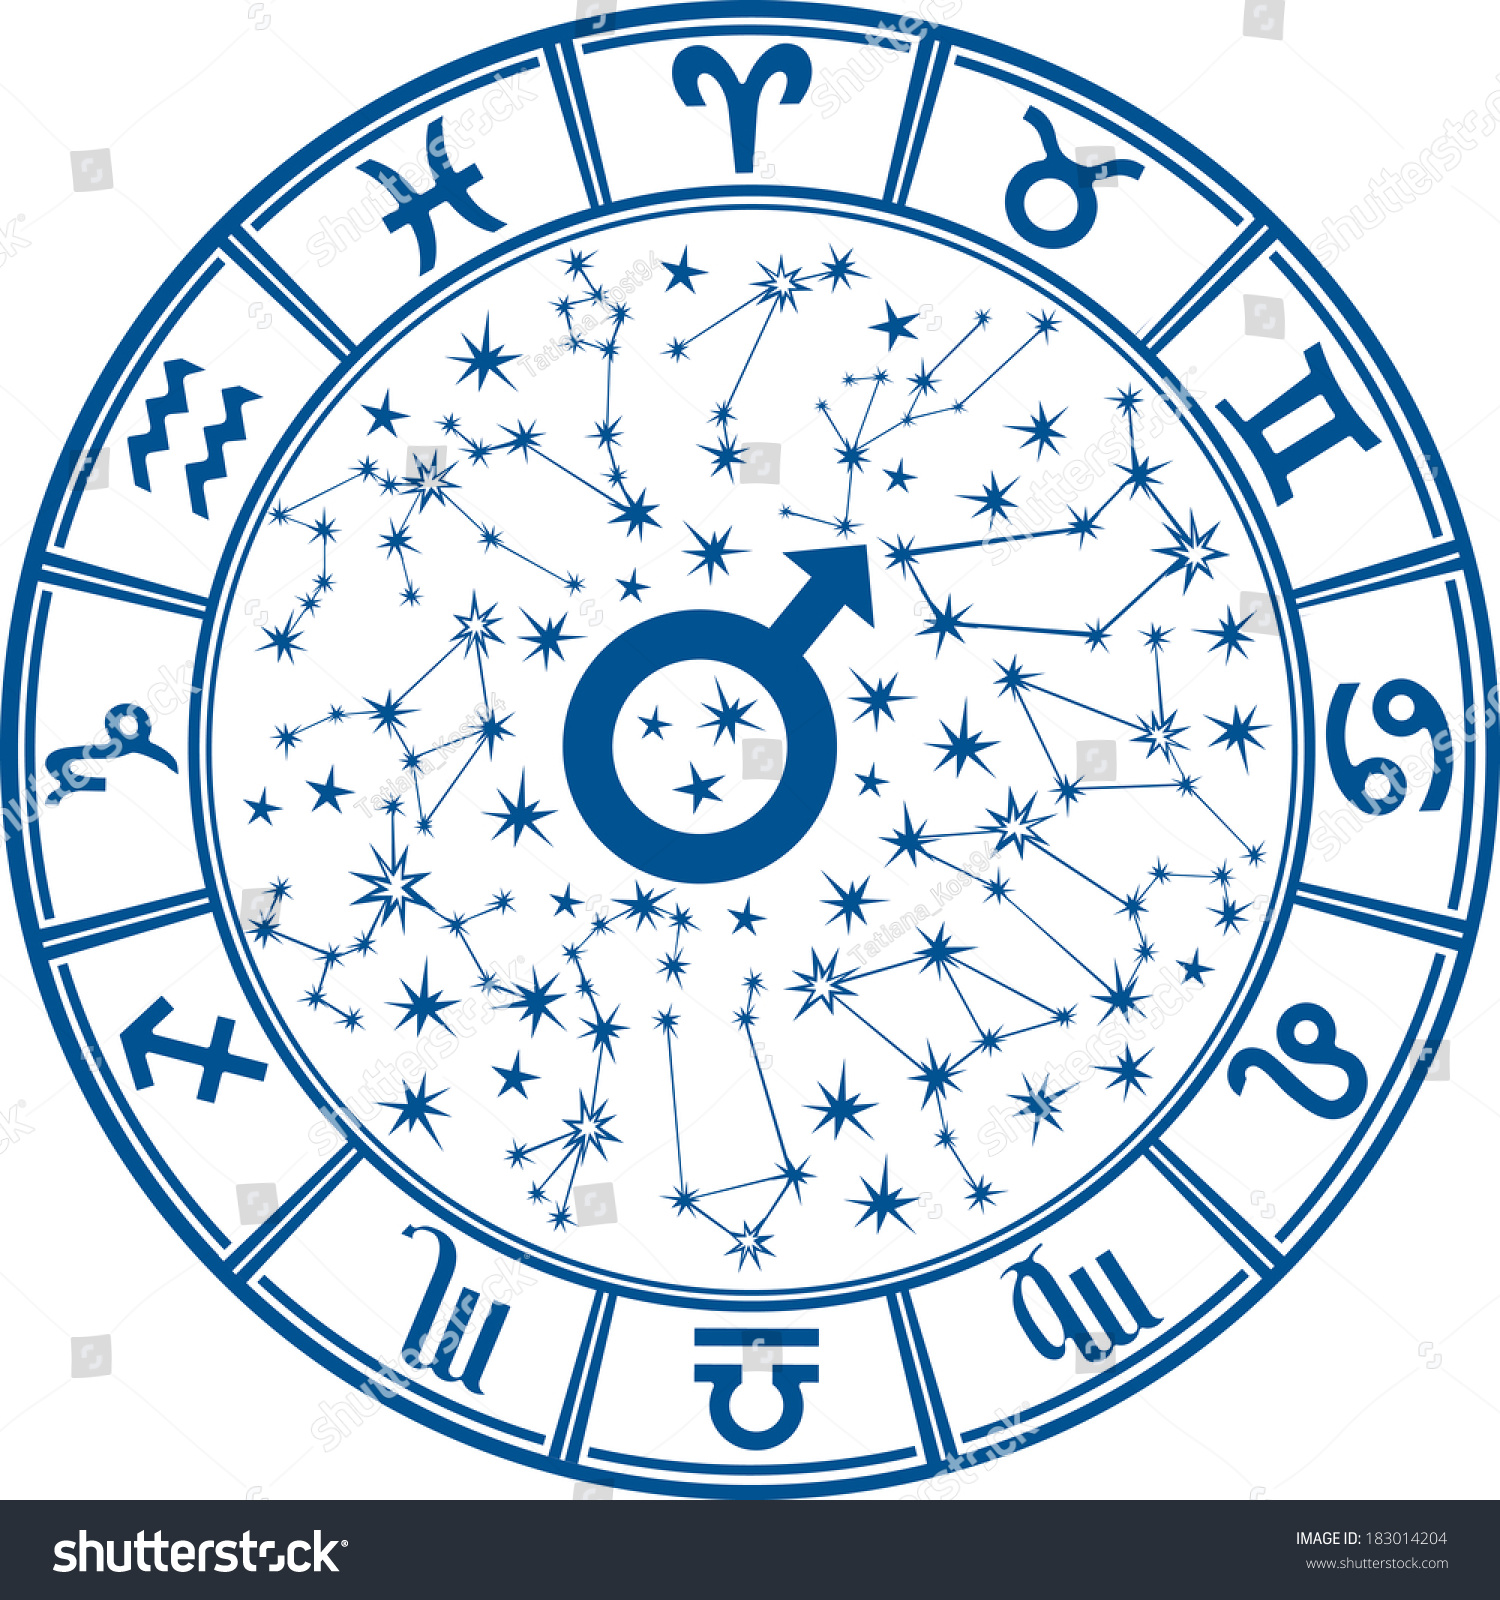 -horoscope-circle-with-zodiac-signs-and-constellations-of-the-zodiac ...